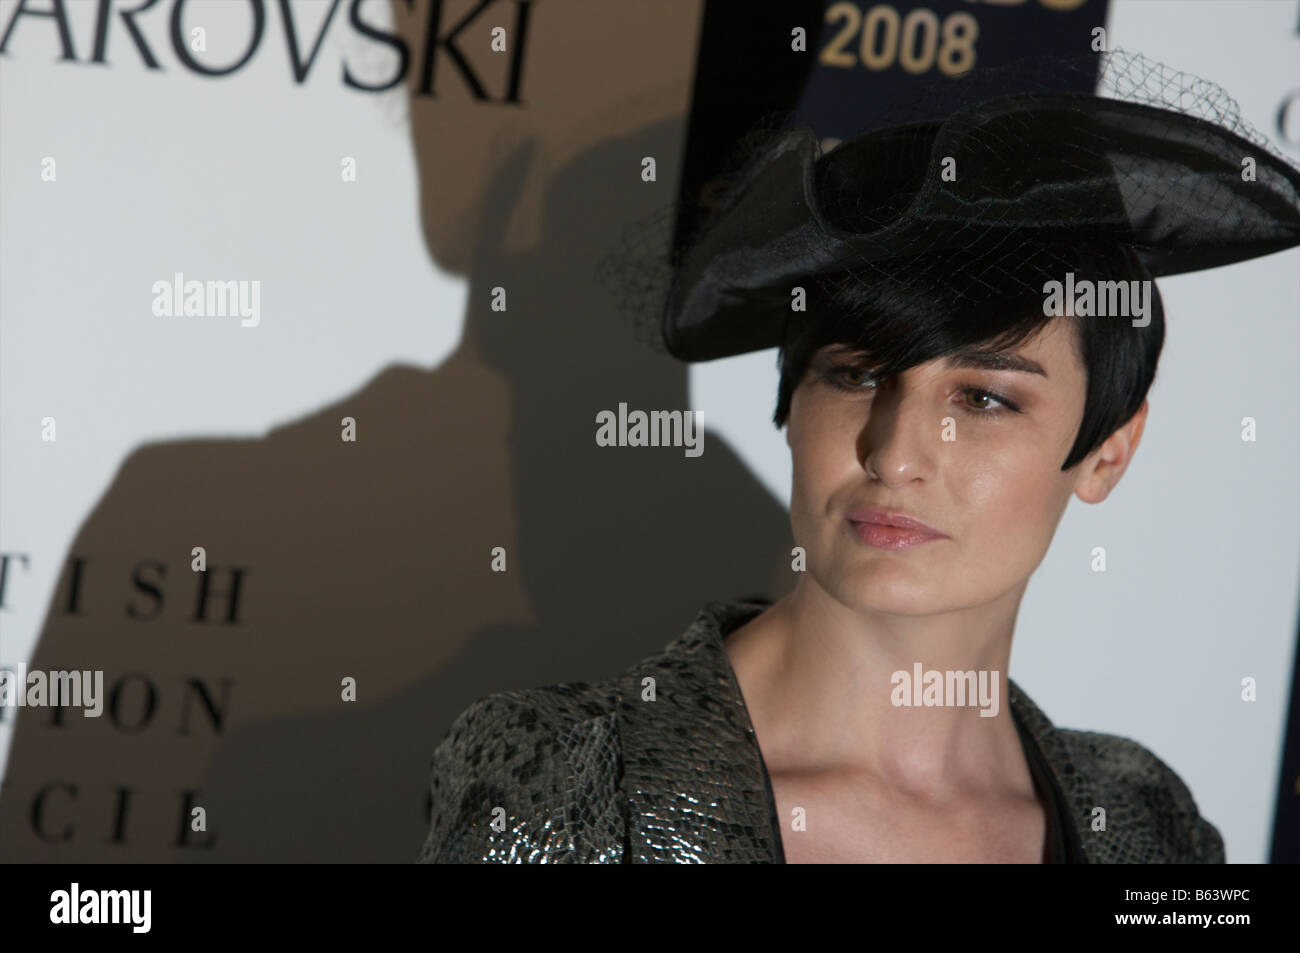 Erin O Connor attending British fashion awards St Vincent square London 25th of November 2008 - Stock Image